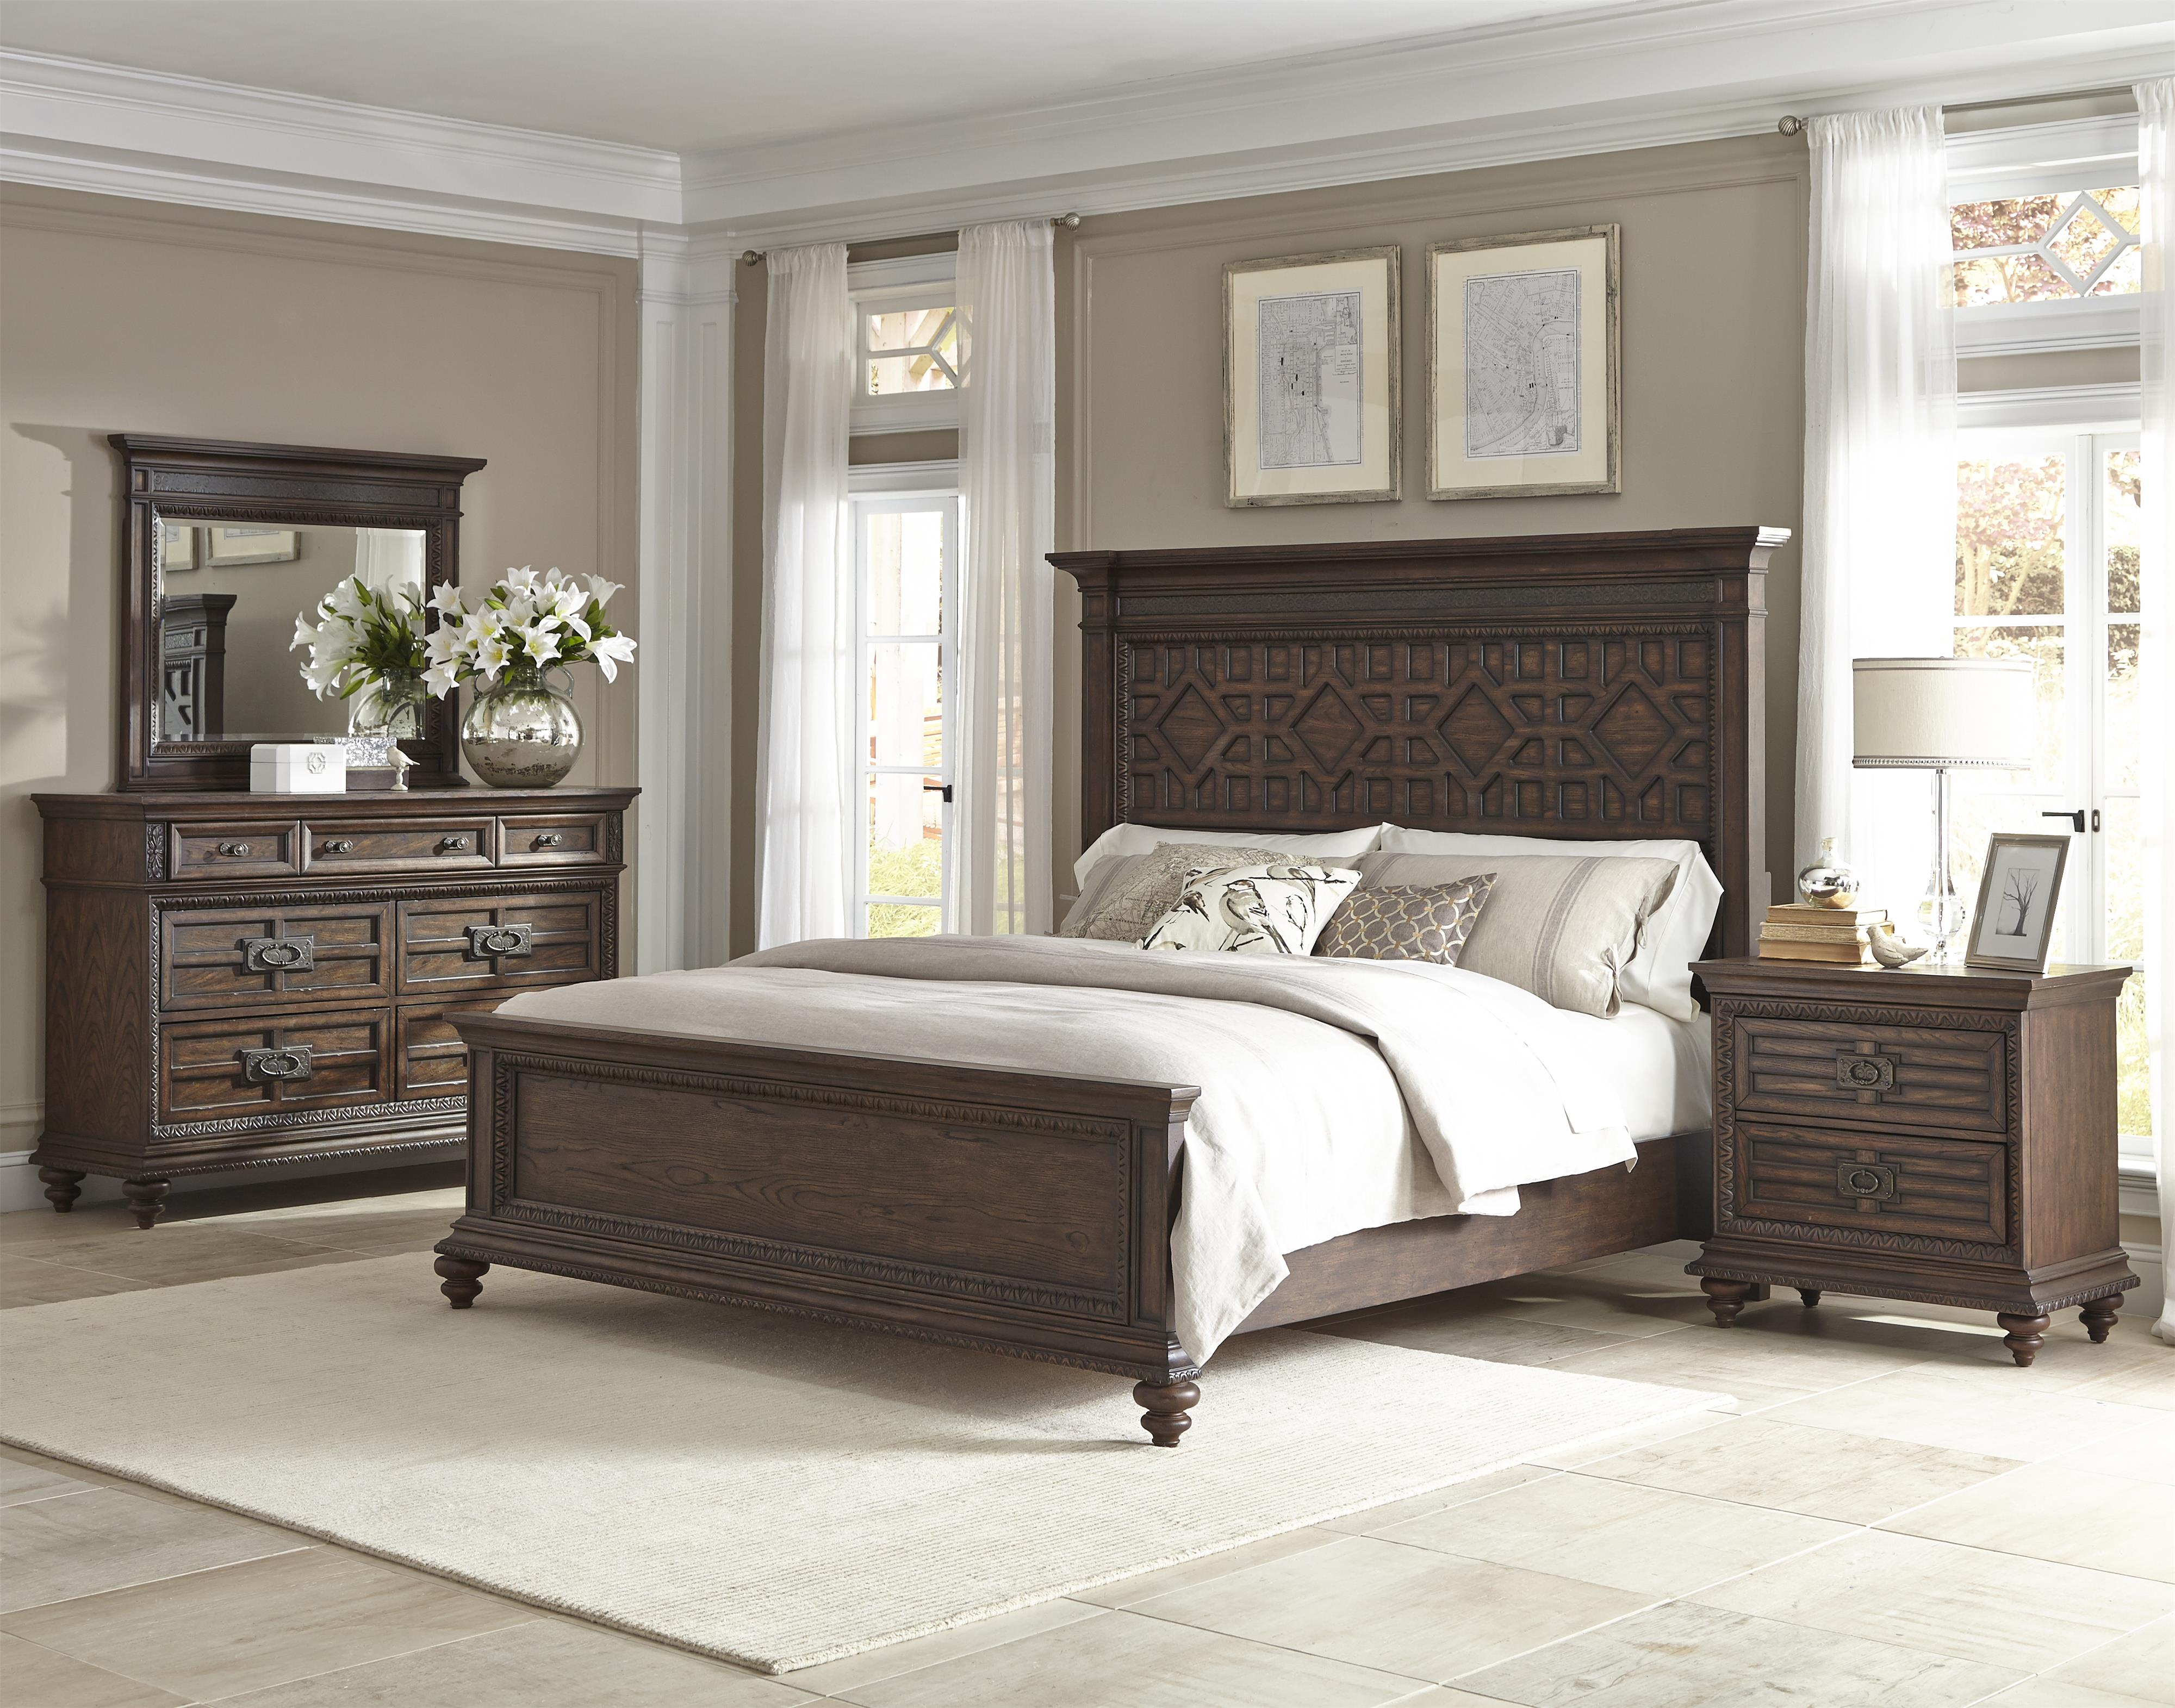 Klaussner international palencia queen panel bed with for International decor furniture